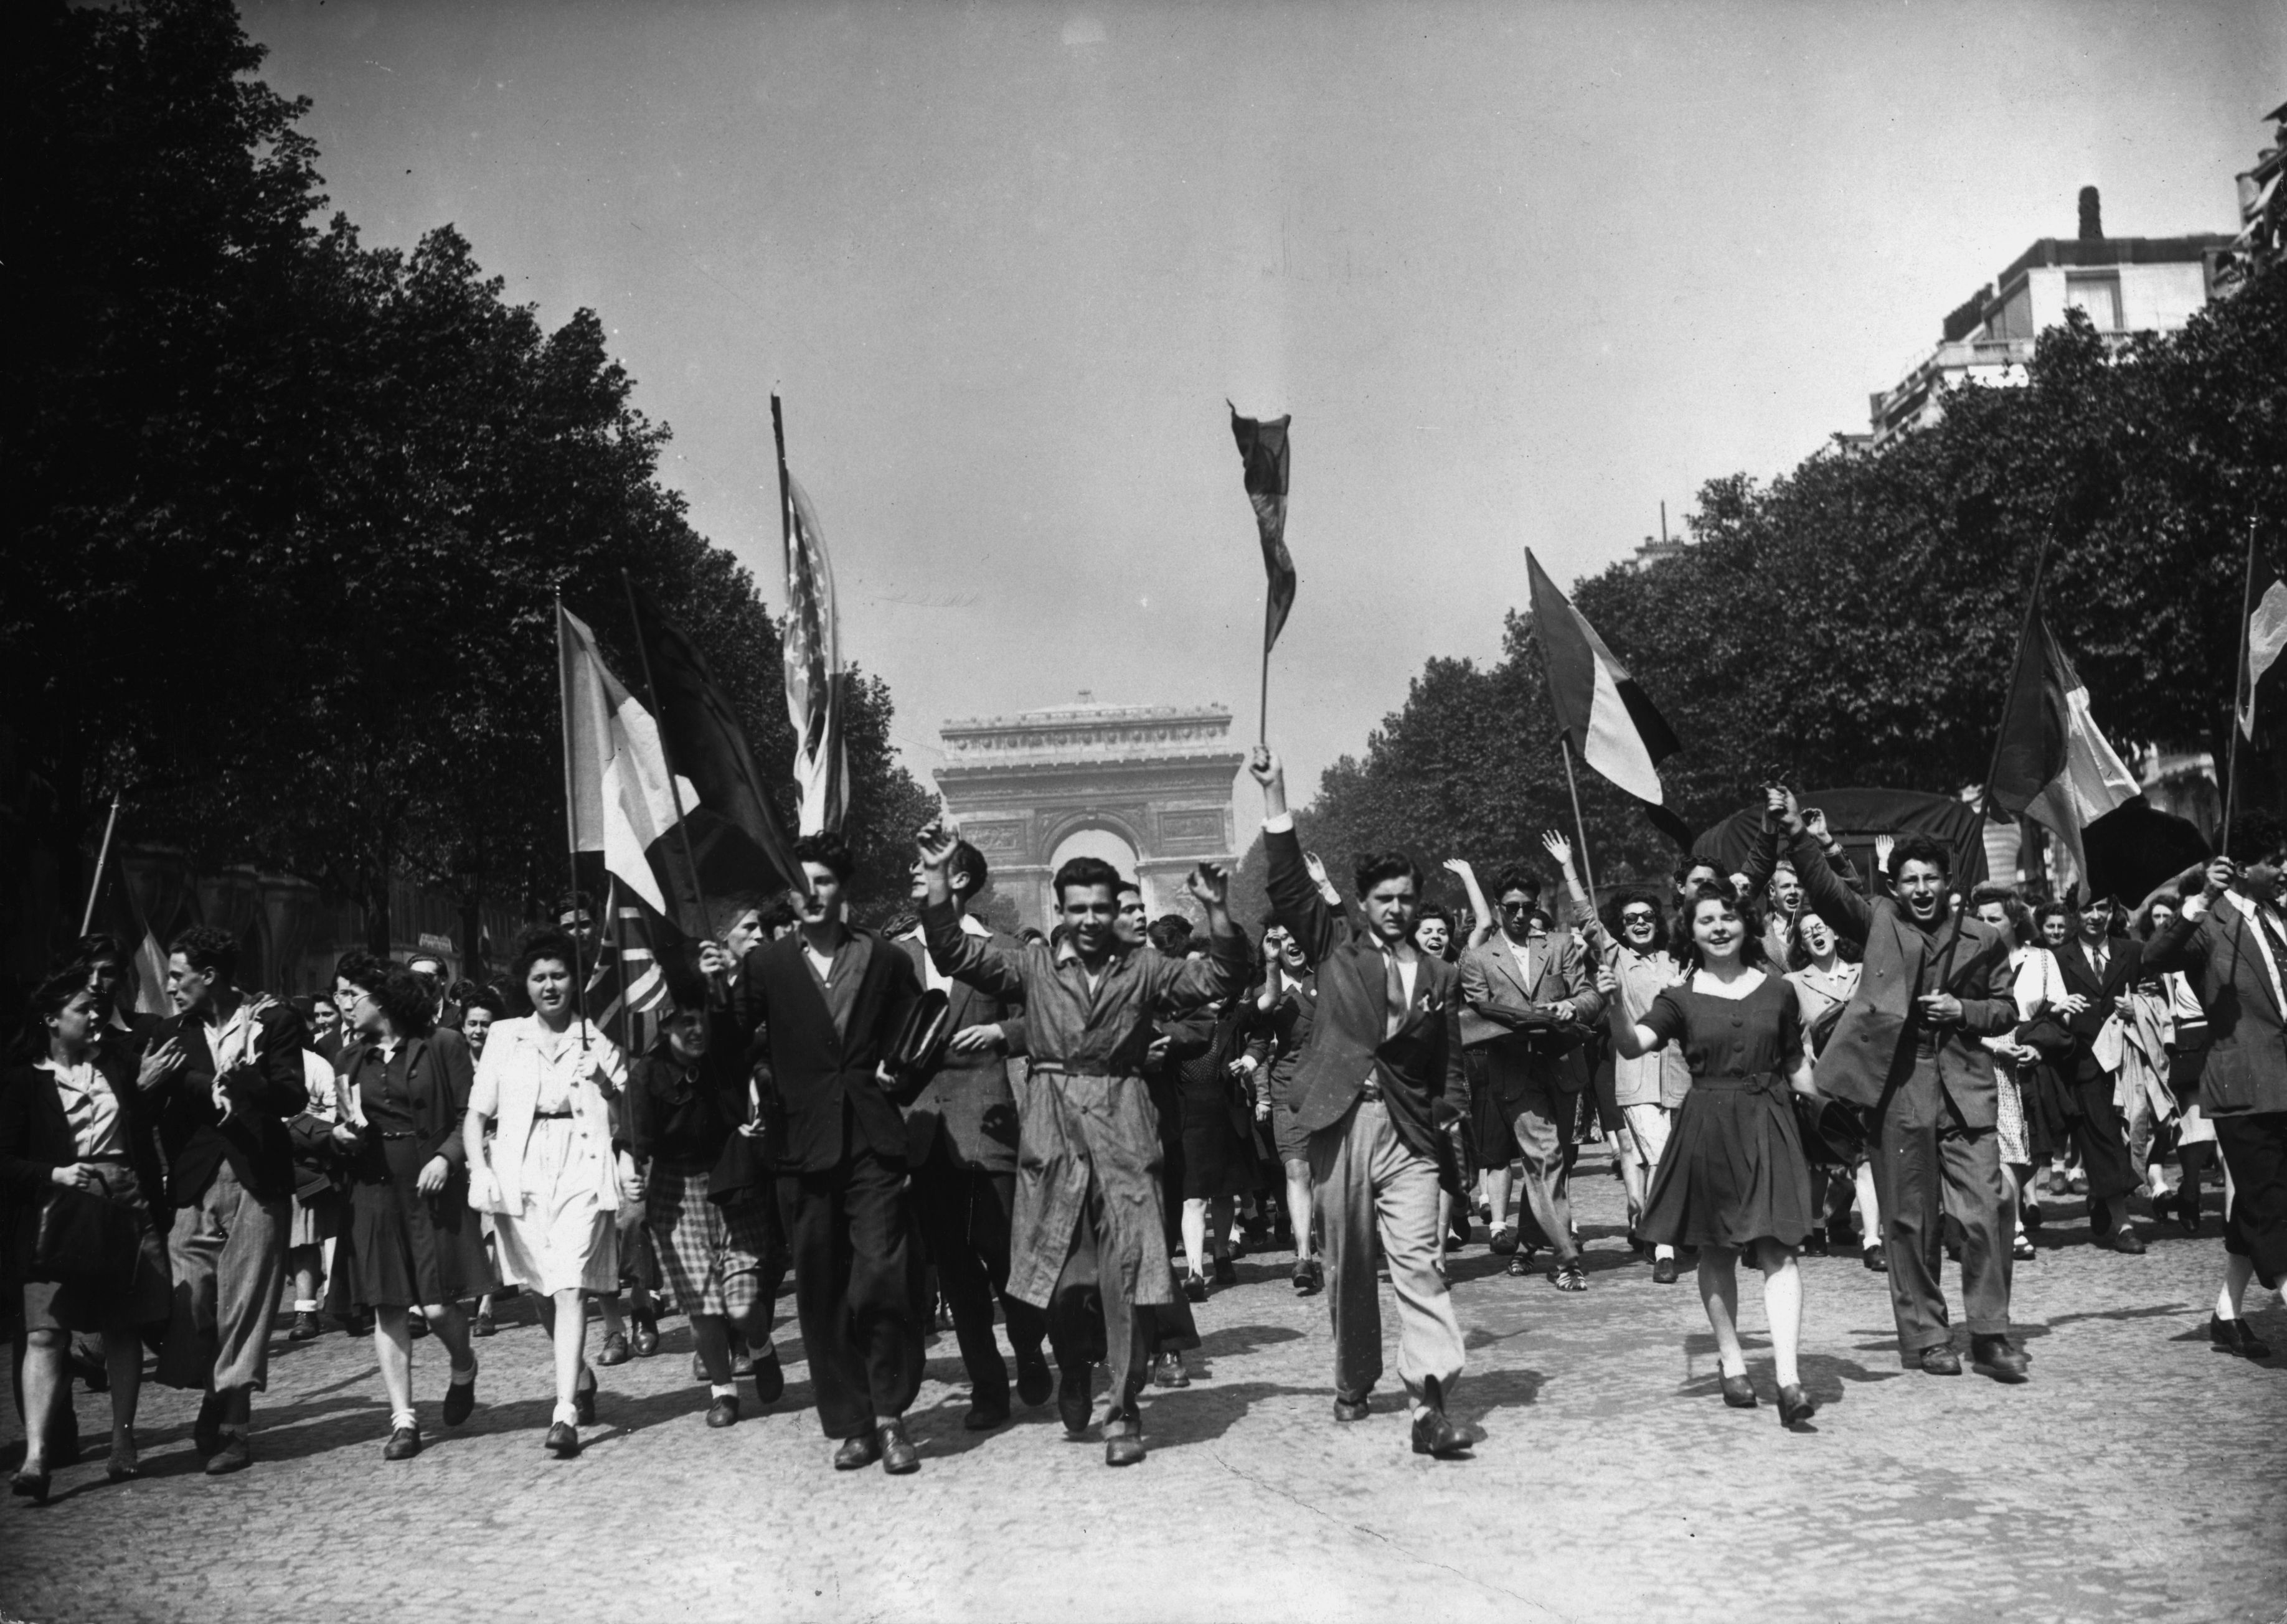 V-E Day 70 years ago touched off large-scale celebrations, including this procession in Paris. (Getty Images)